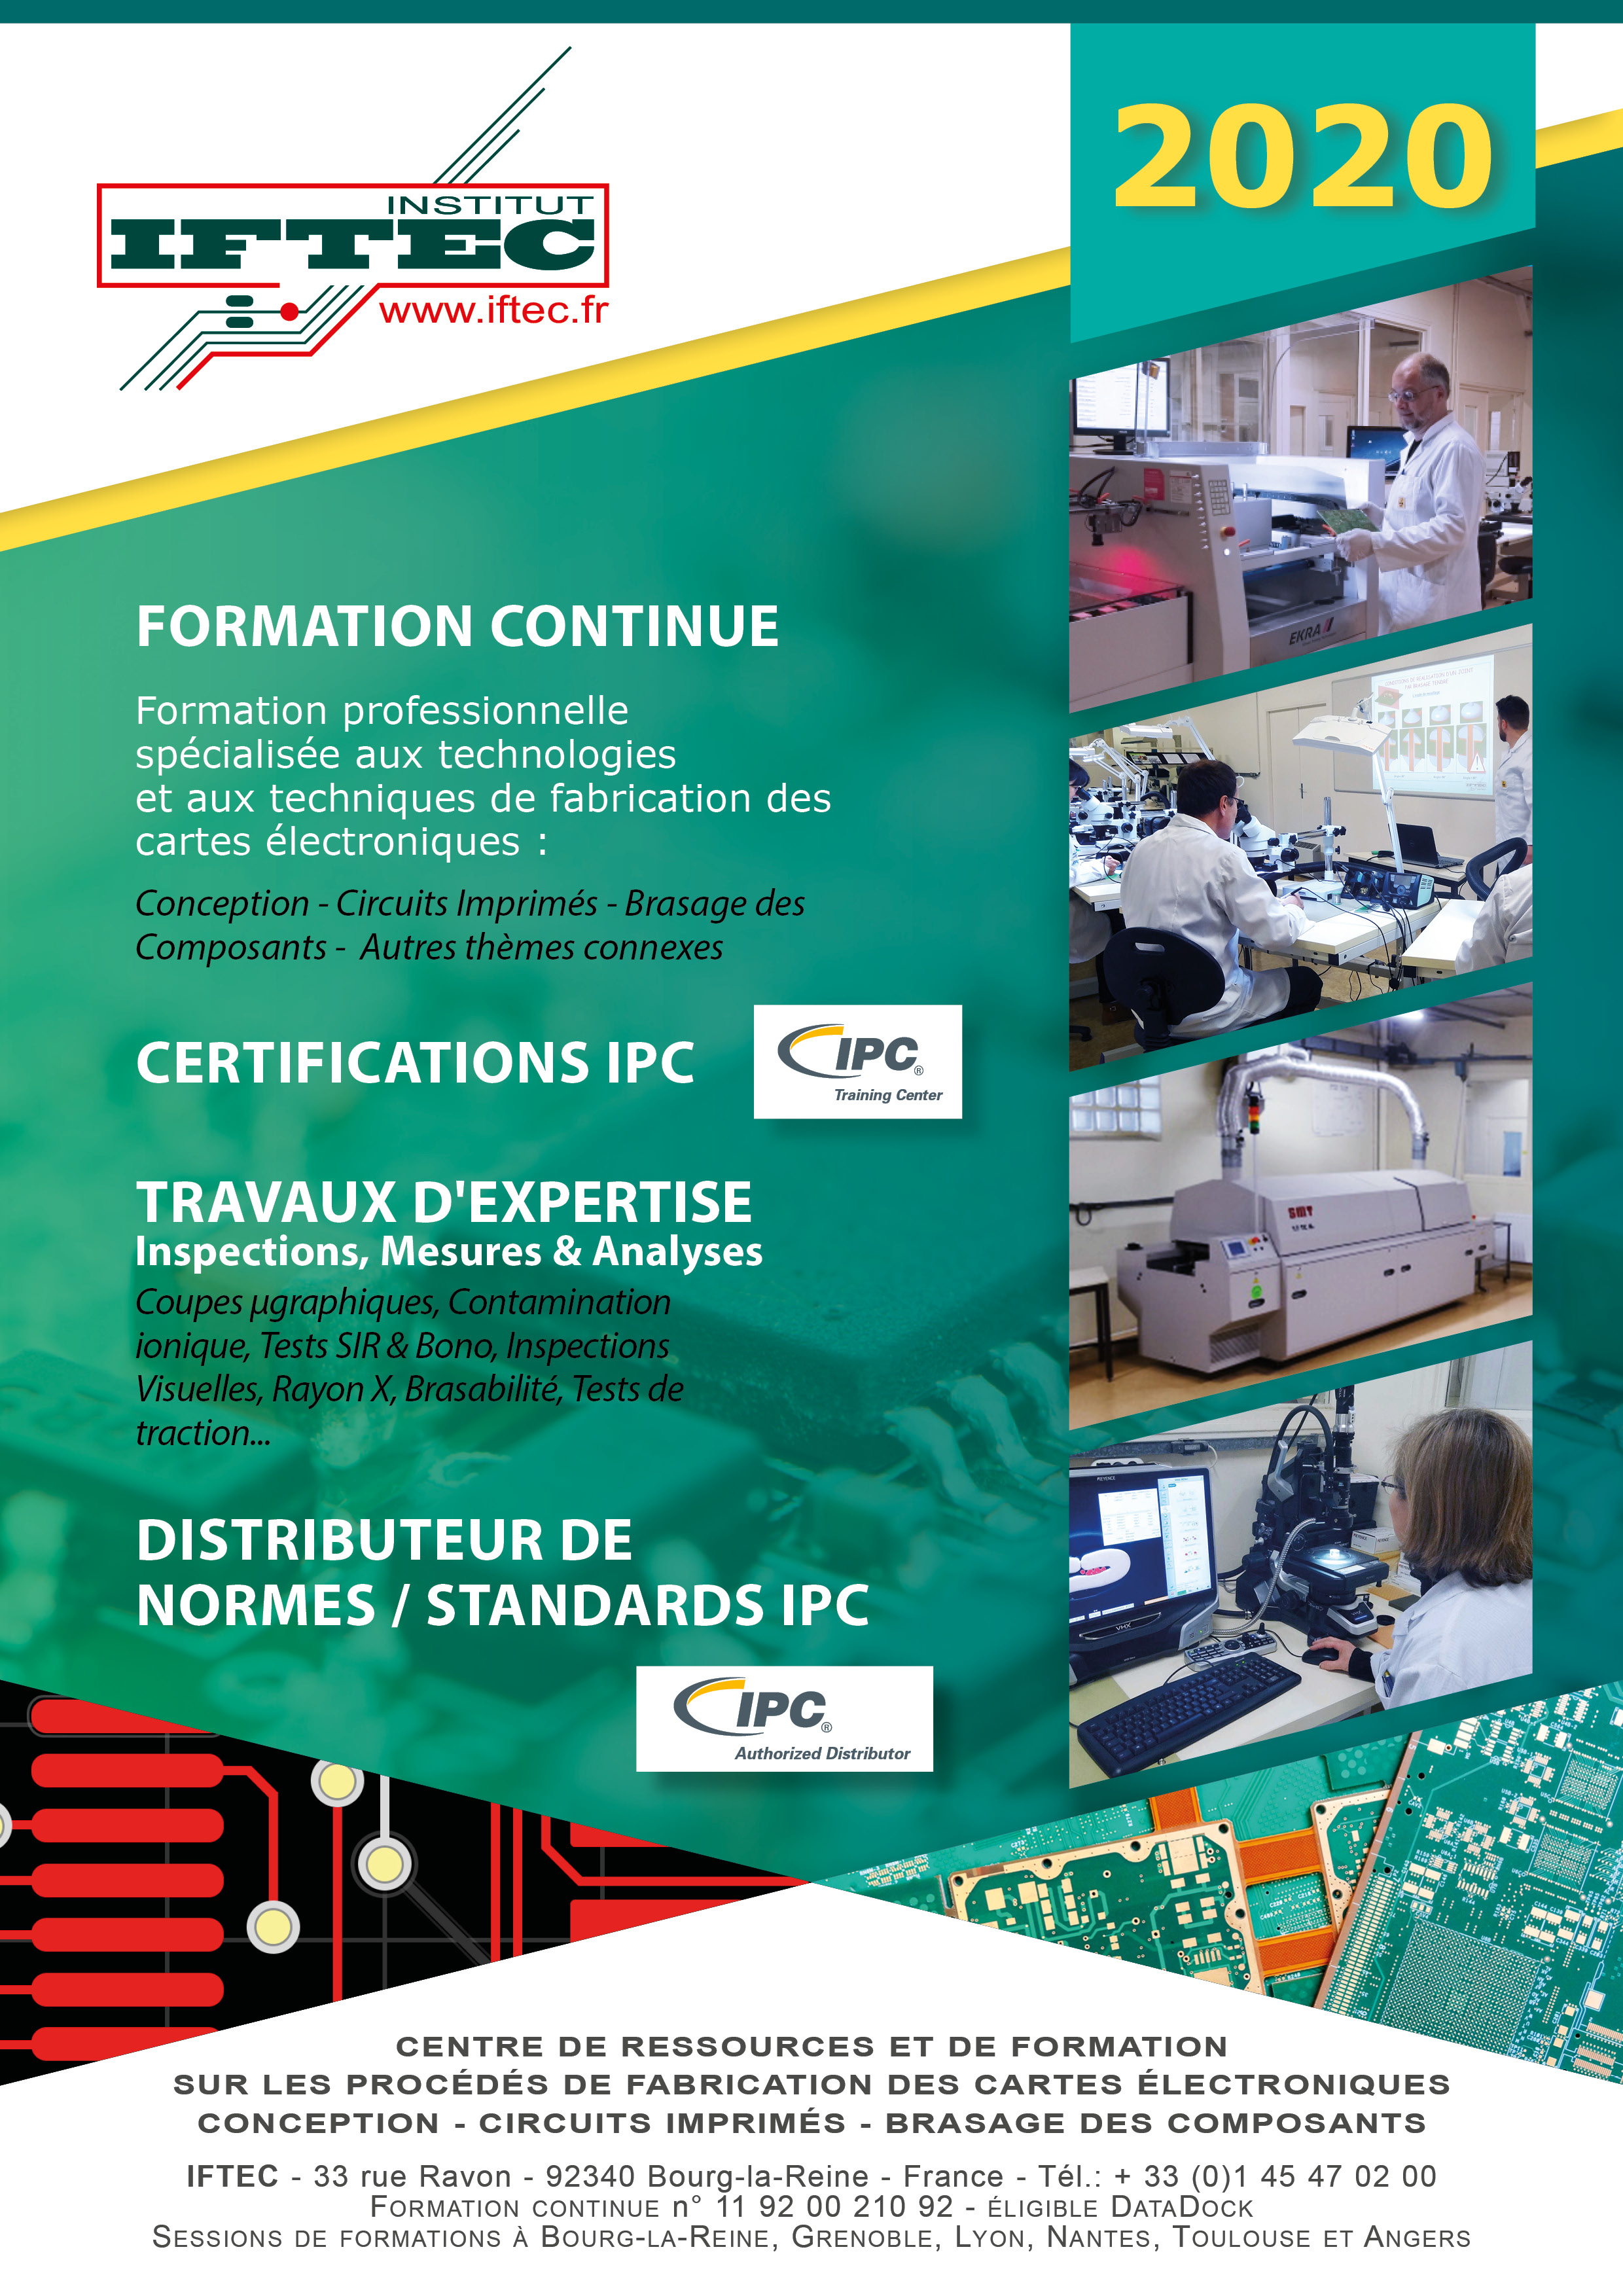 Calendrier des formations 2020